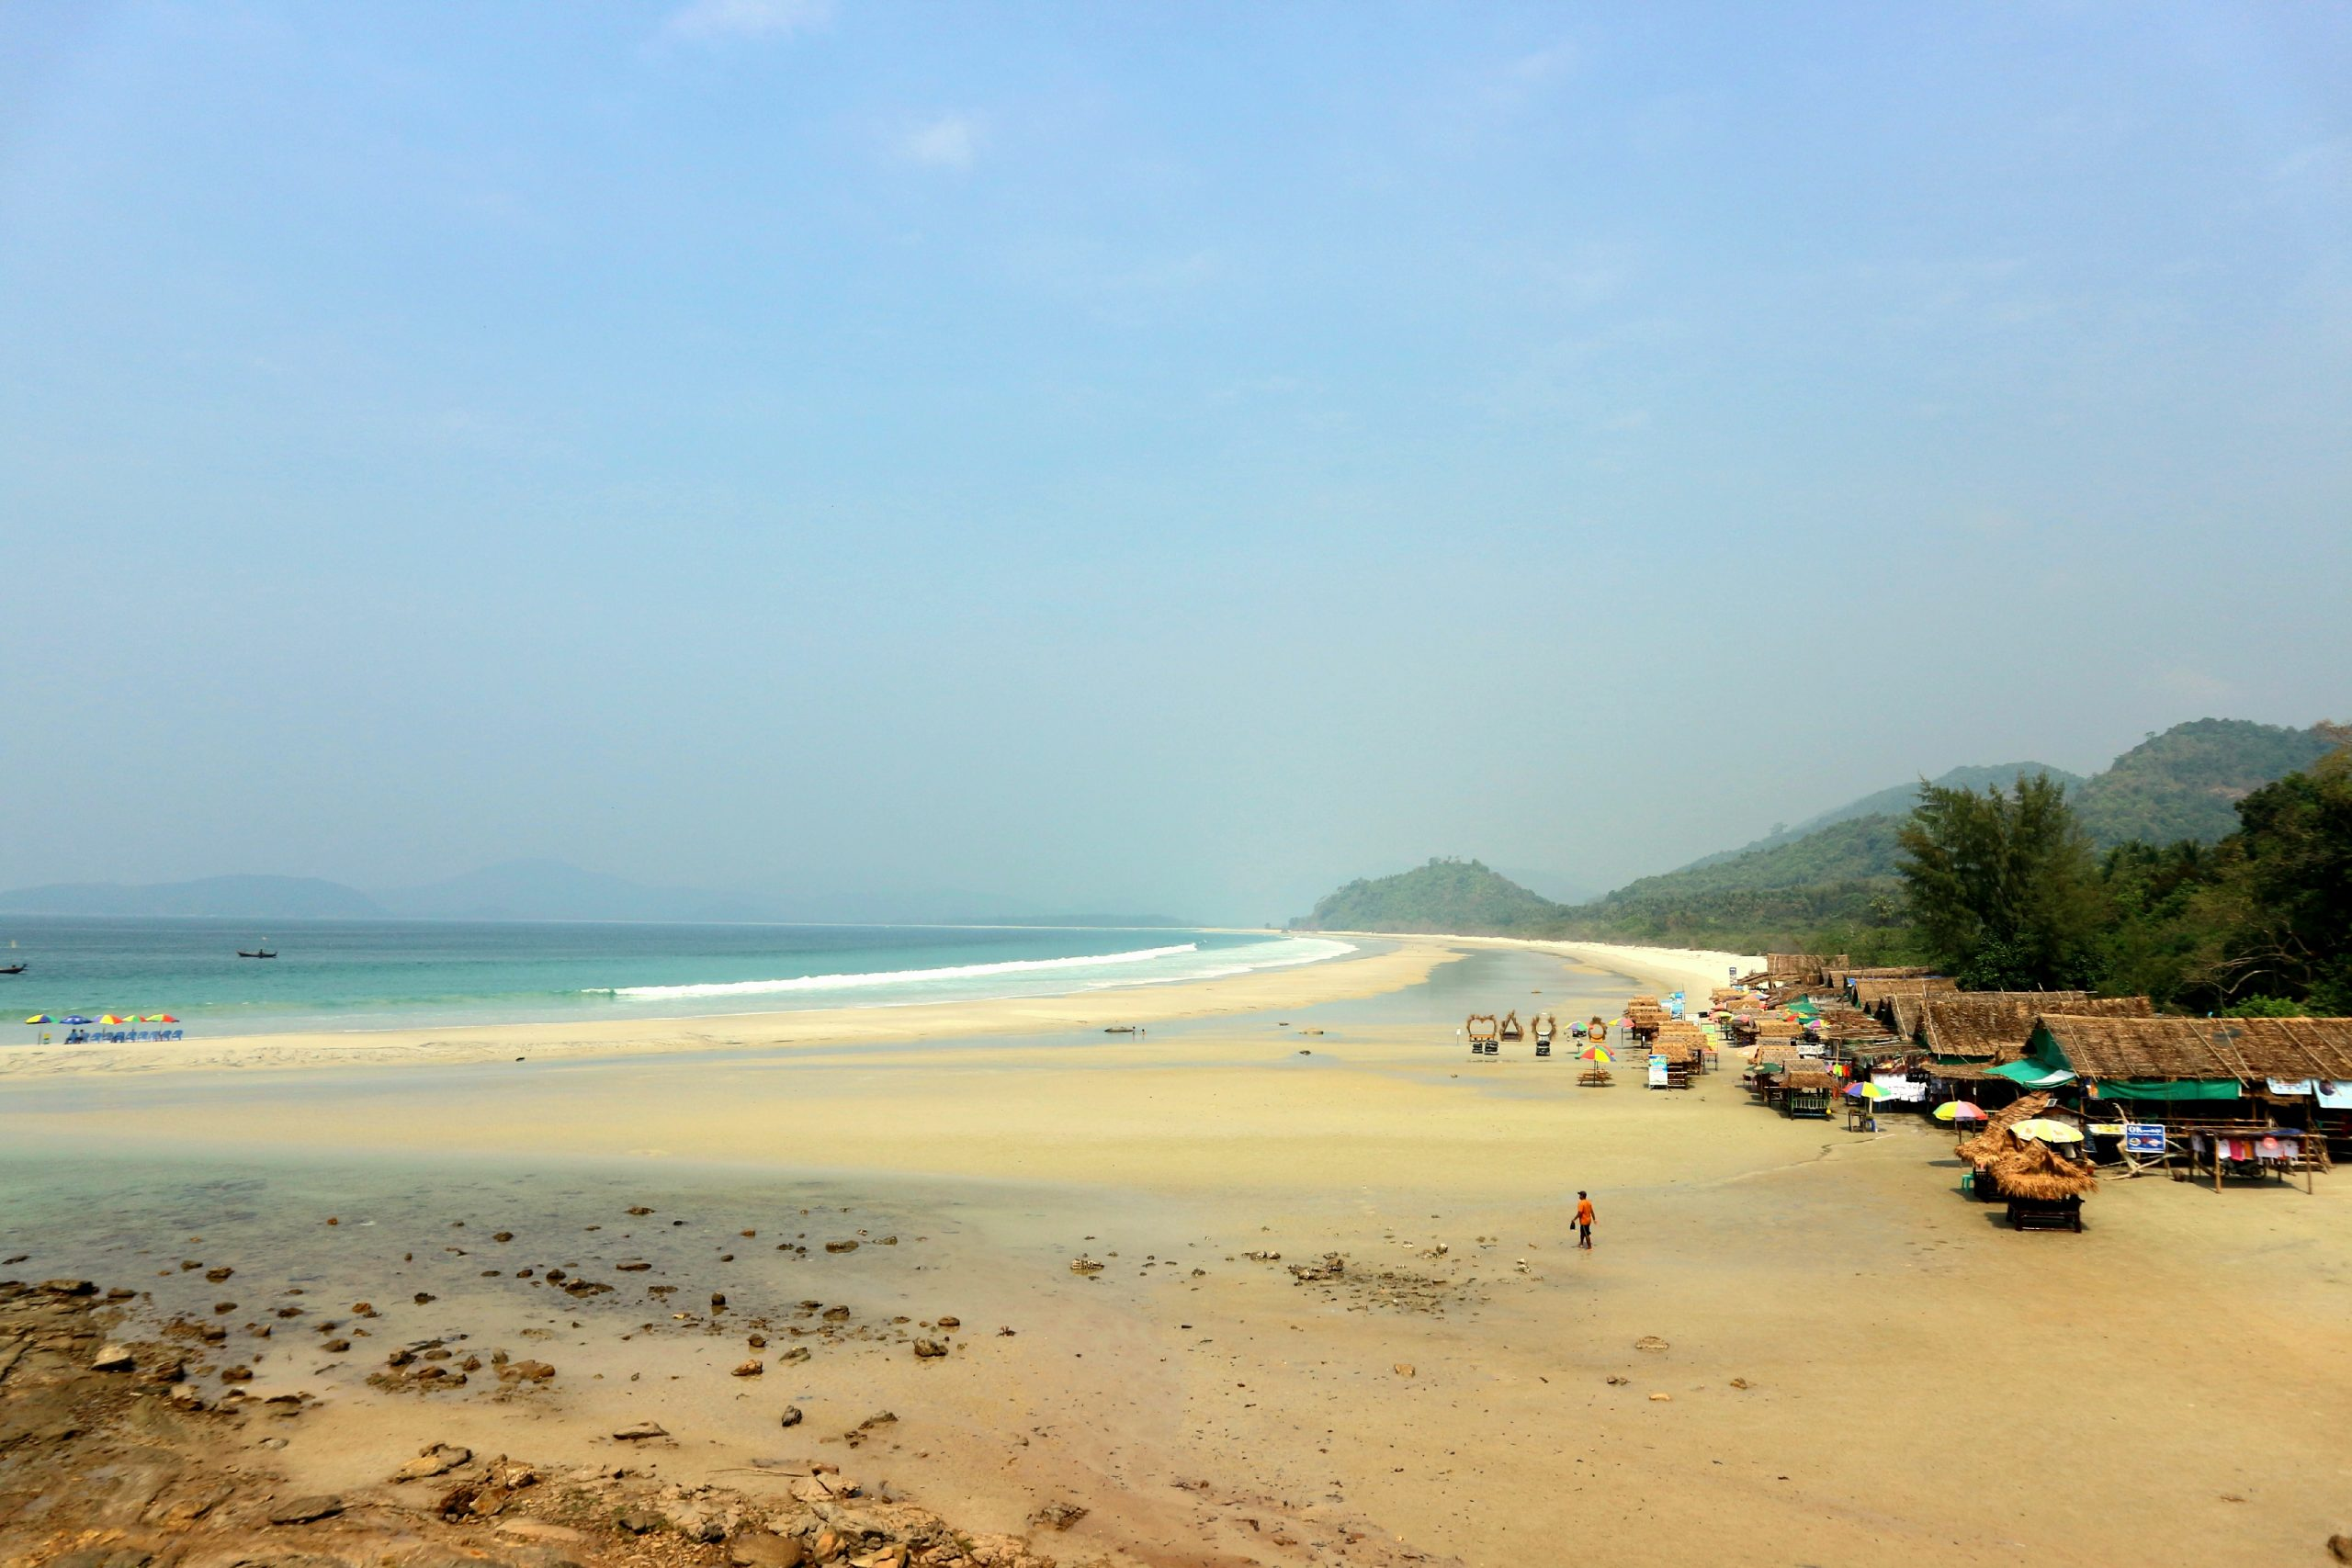 Myanmar beaches: Paradise beach, Grandfather beach and Sin Htauk